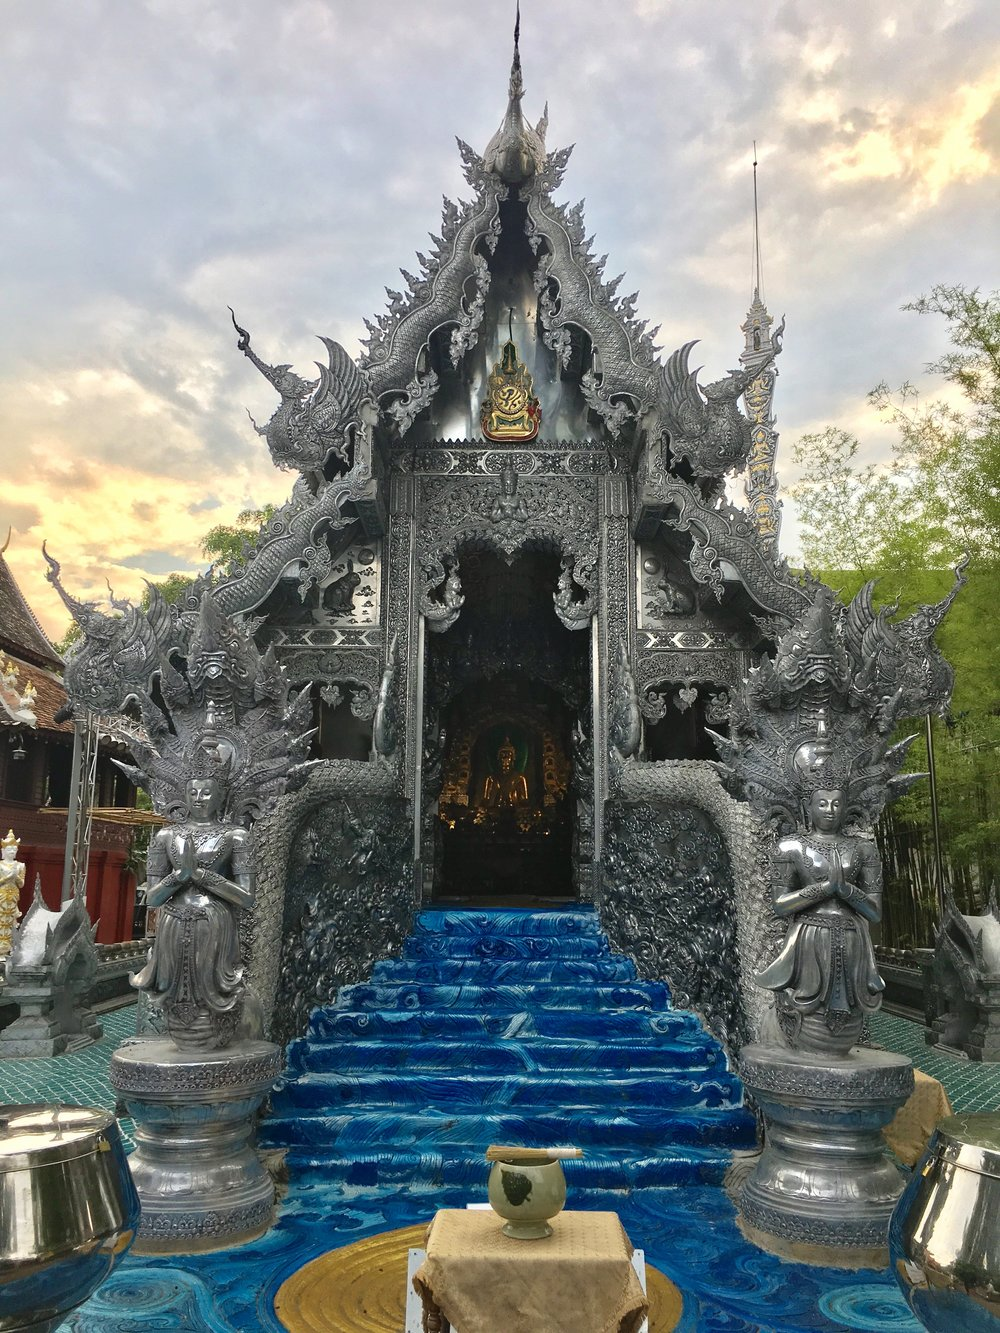 The pressed silver artistry of Wat Sri Suphan made it one of our favorite temples to explore in Chiang Mai